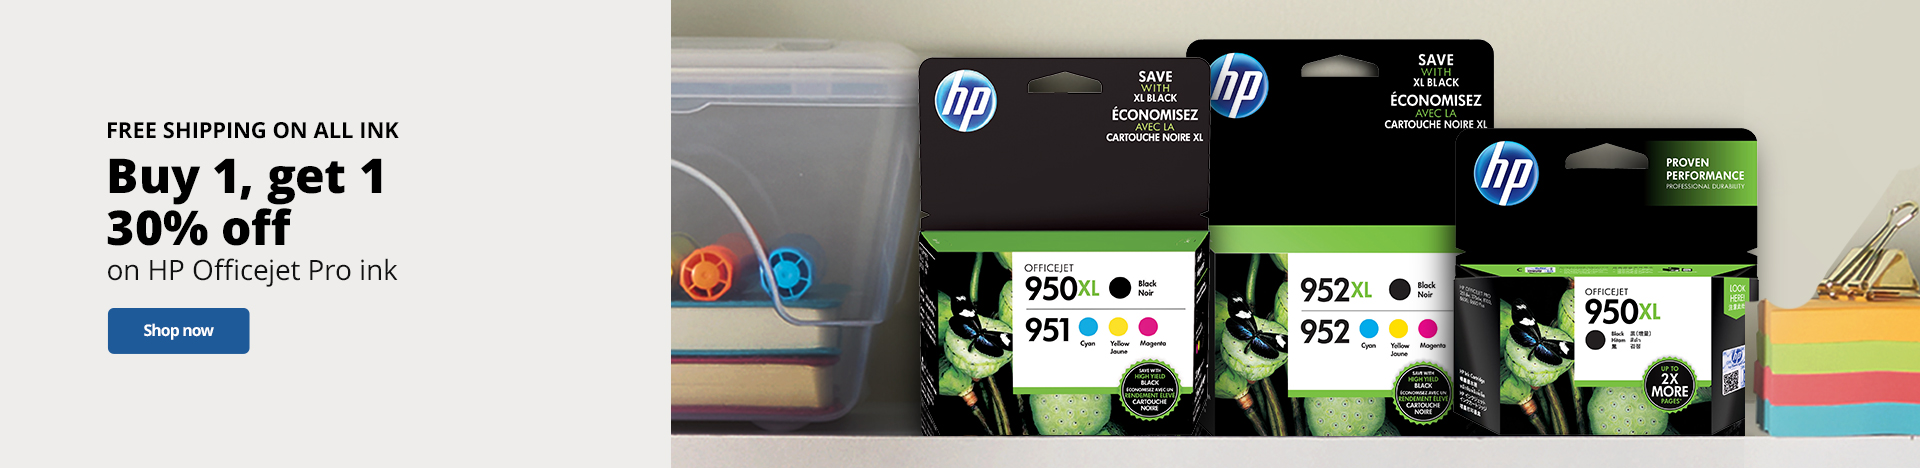 Buy One Get One 30% Off HP Officejet Pro Ink